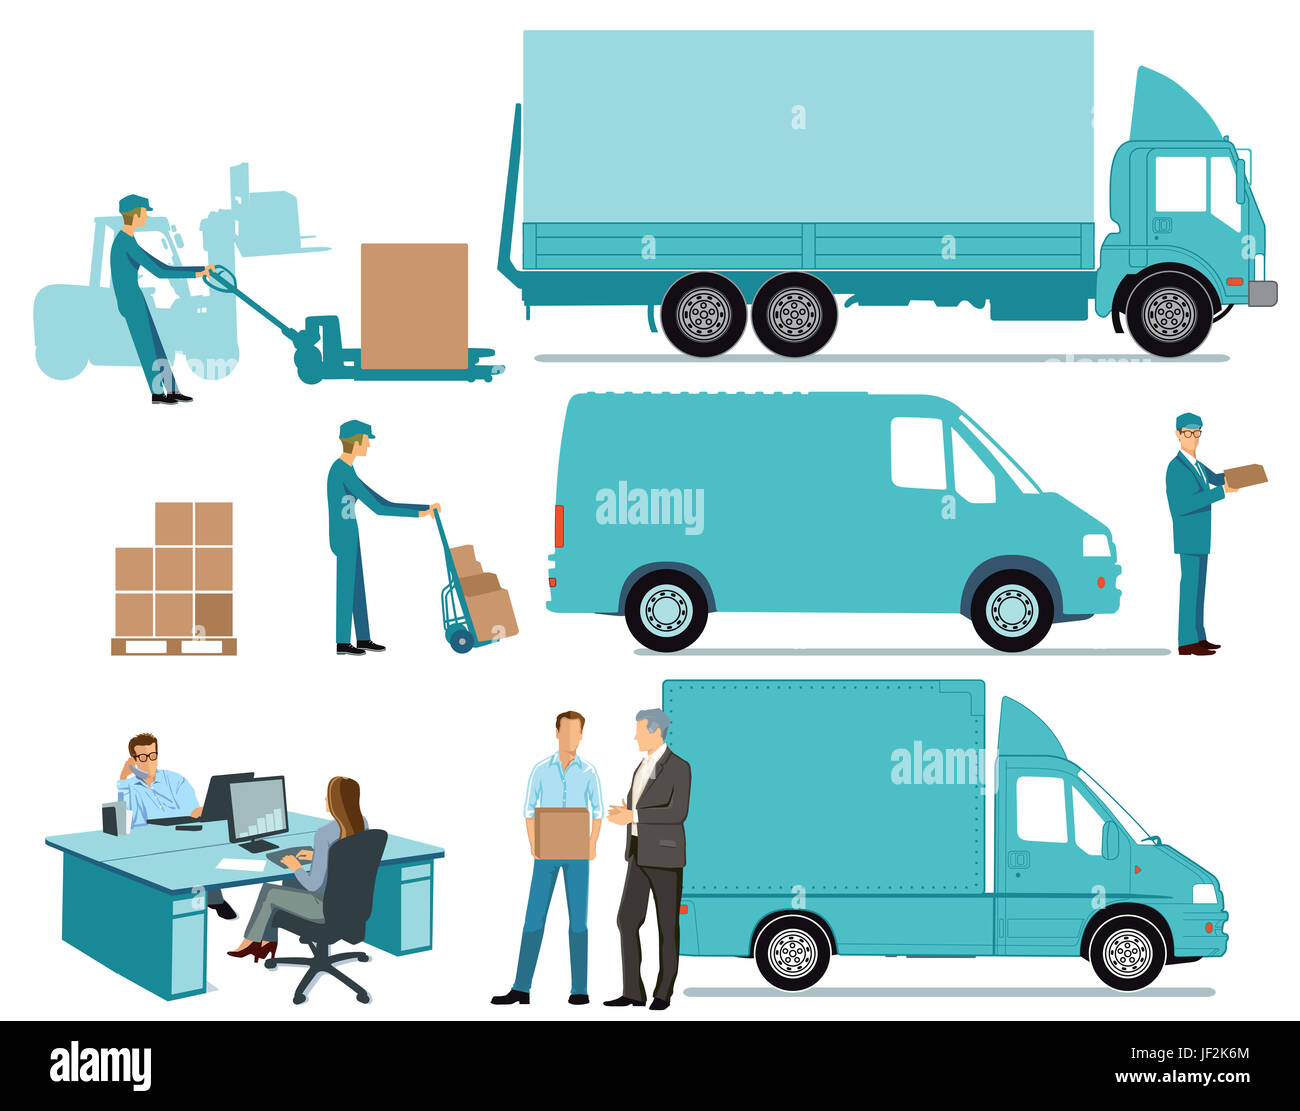 Delivery Concept, freight, transportation Stock Photo